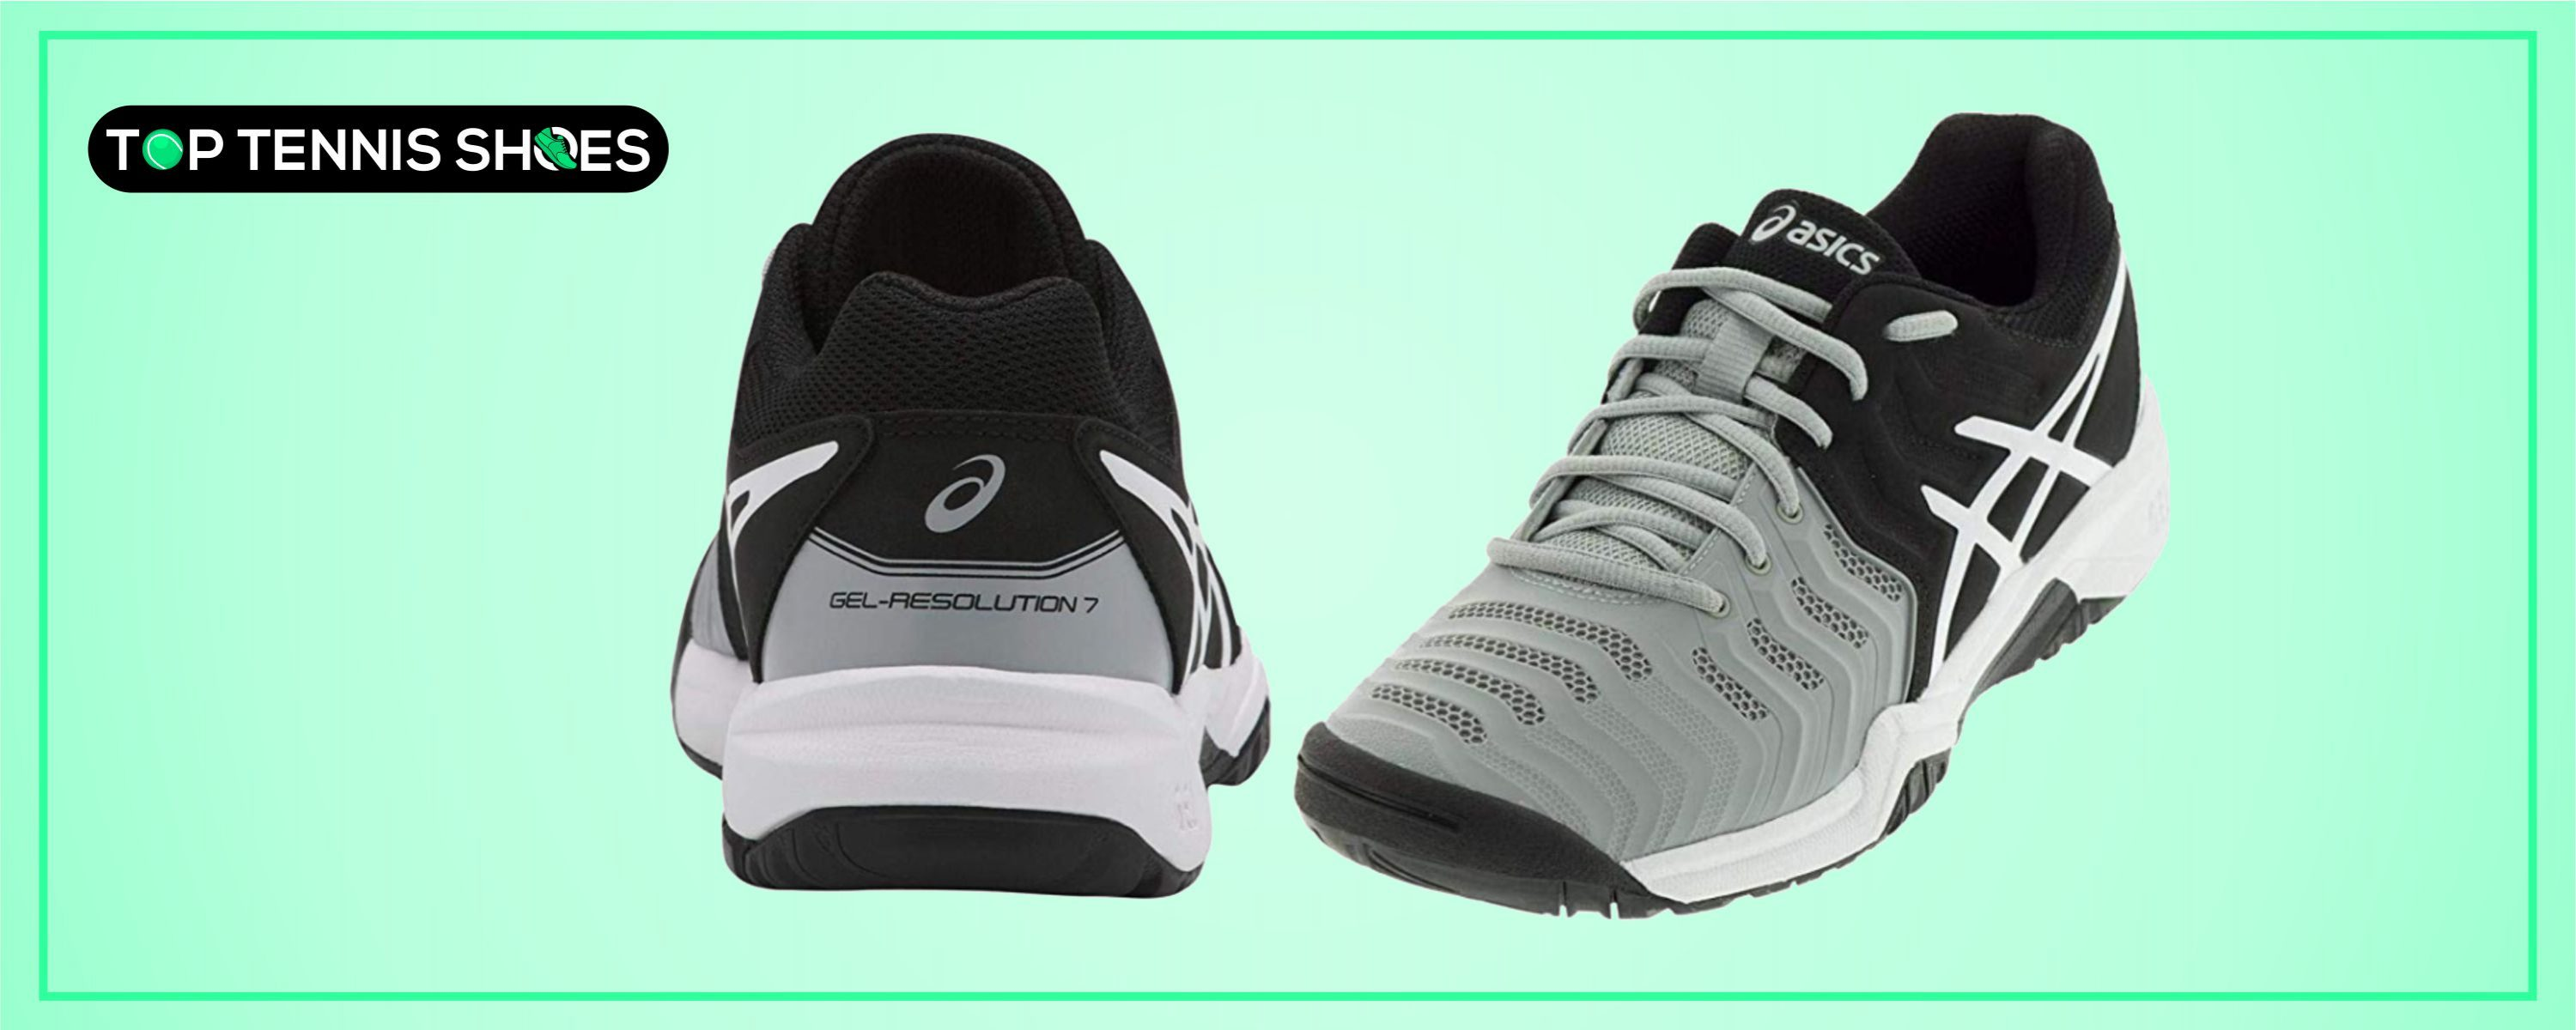 Top Tennis Shoes for Sliding